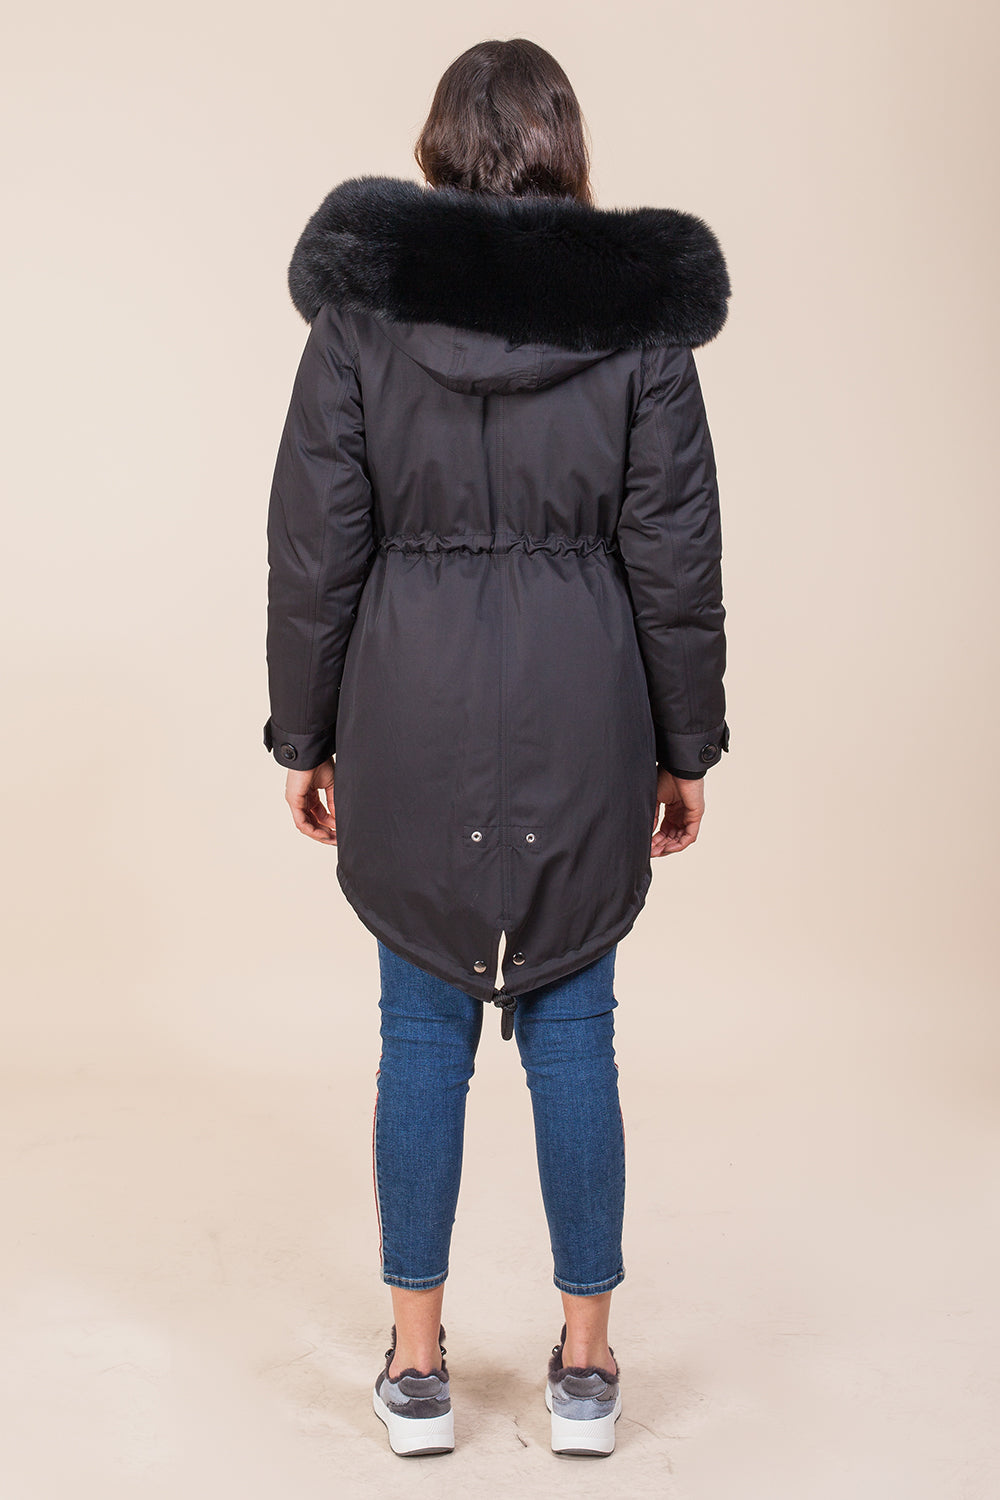 Black Midi Parka Main Fabric is Waterproof / Raincoat Fabric With Black / Blue Fox